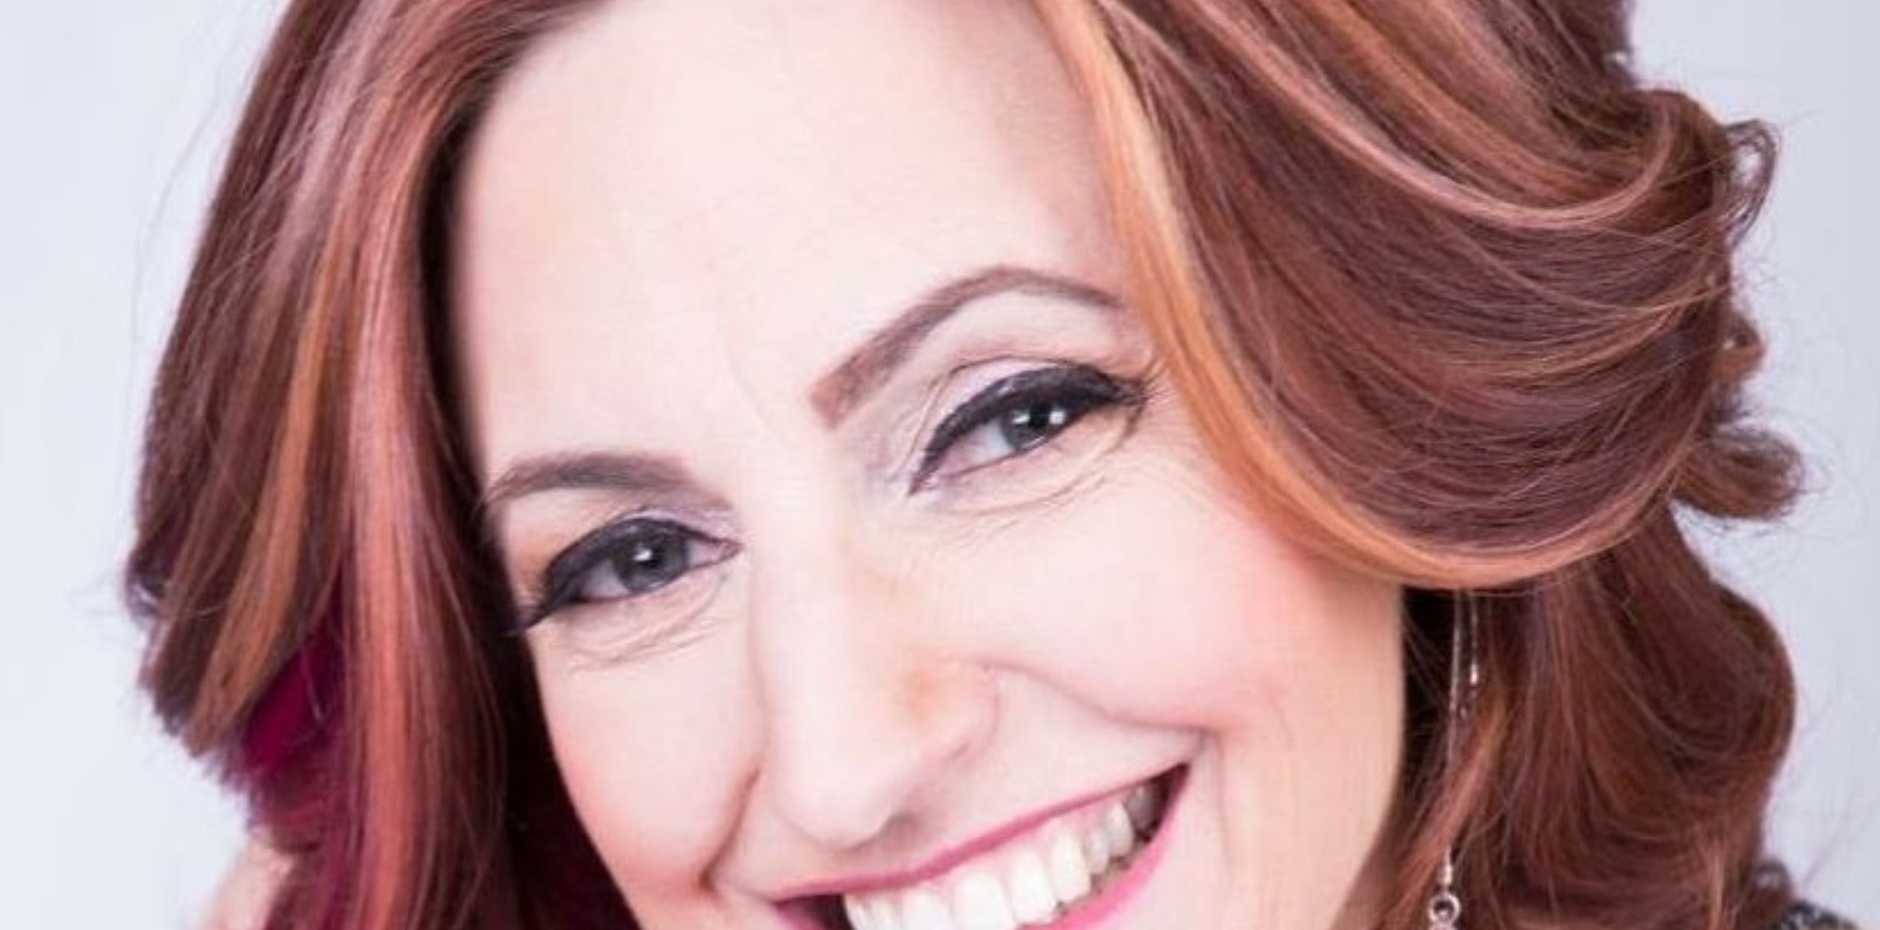 Psychic medium Lisa Williams to come to Australia | Seniors News